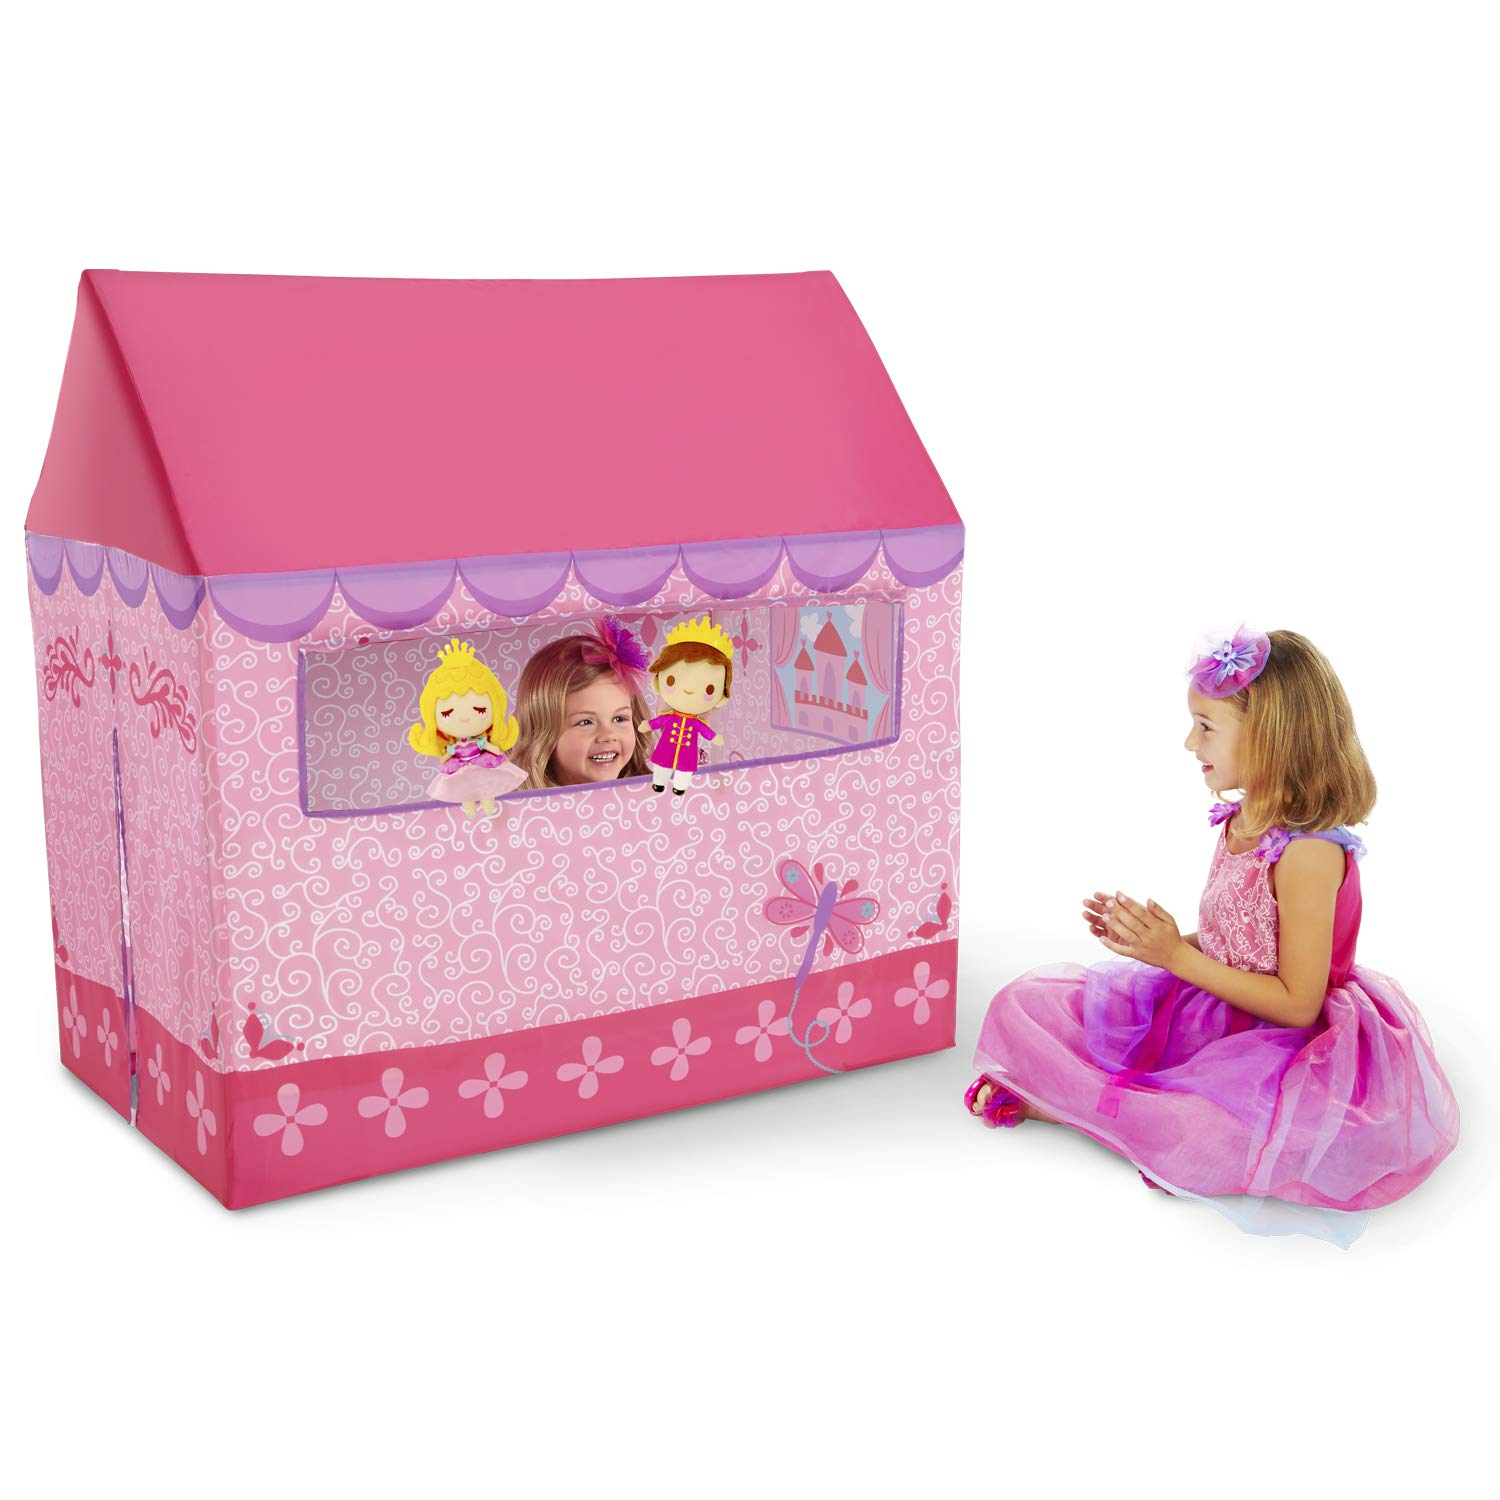 Whimsy /& Wonder Role Play /& Dress-Up Exclusive to Jakks 73483-V1